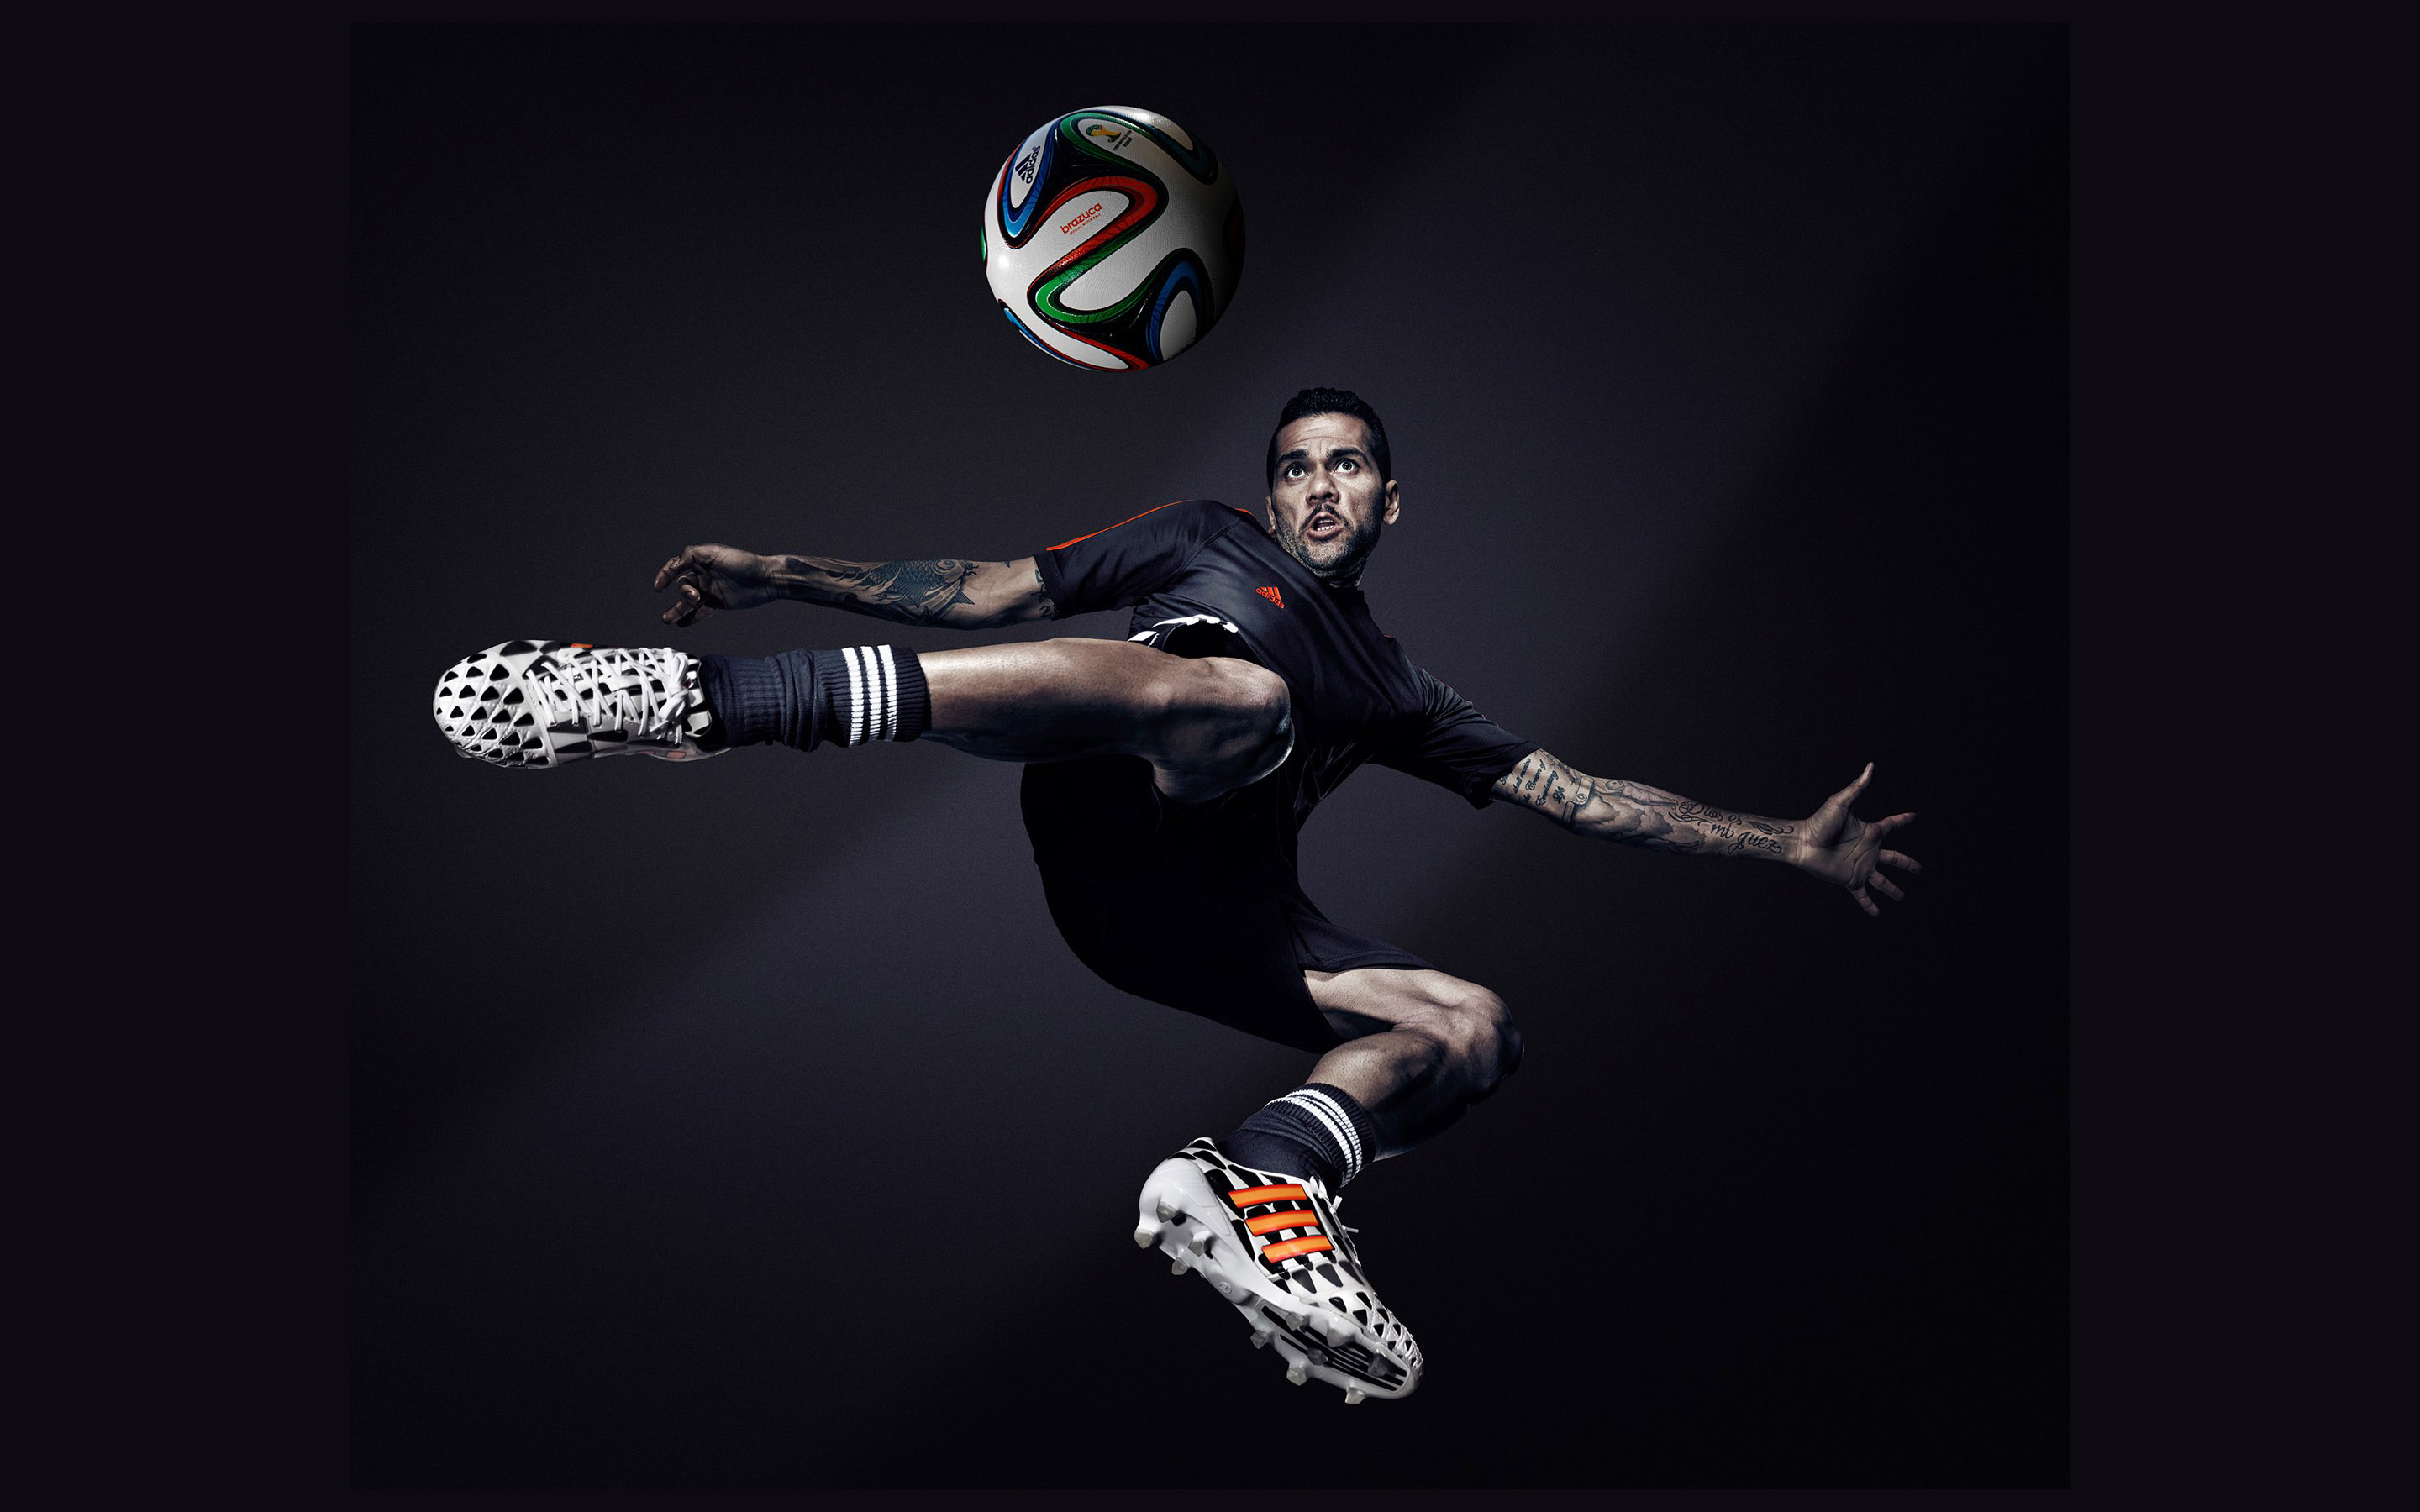 Adidas Football Wallpaper 2014 4